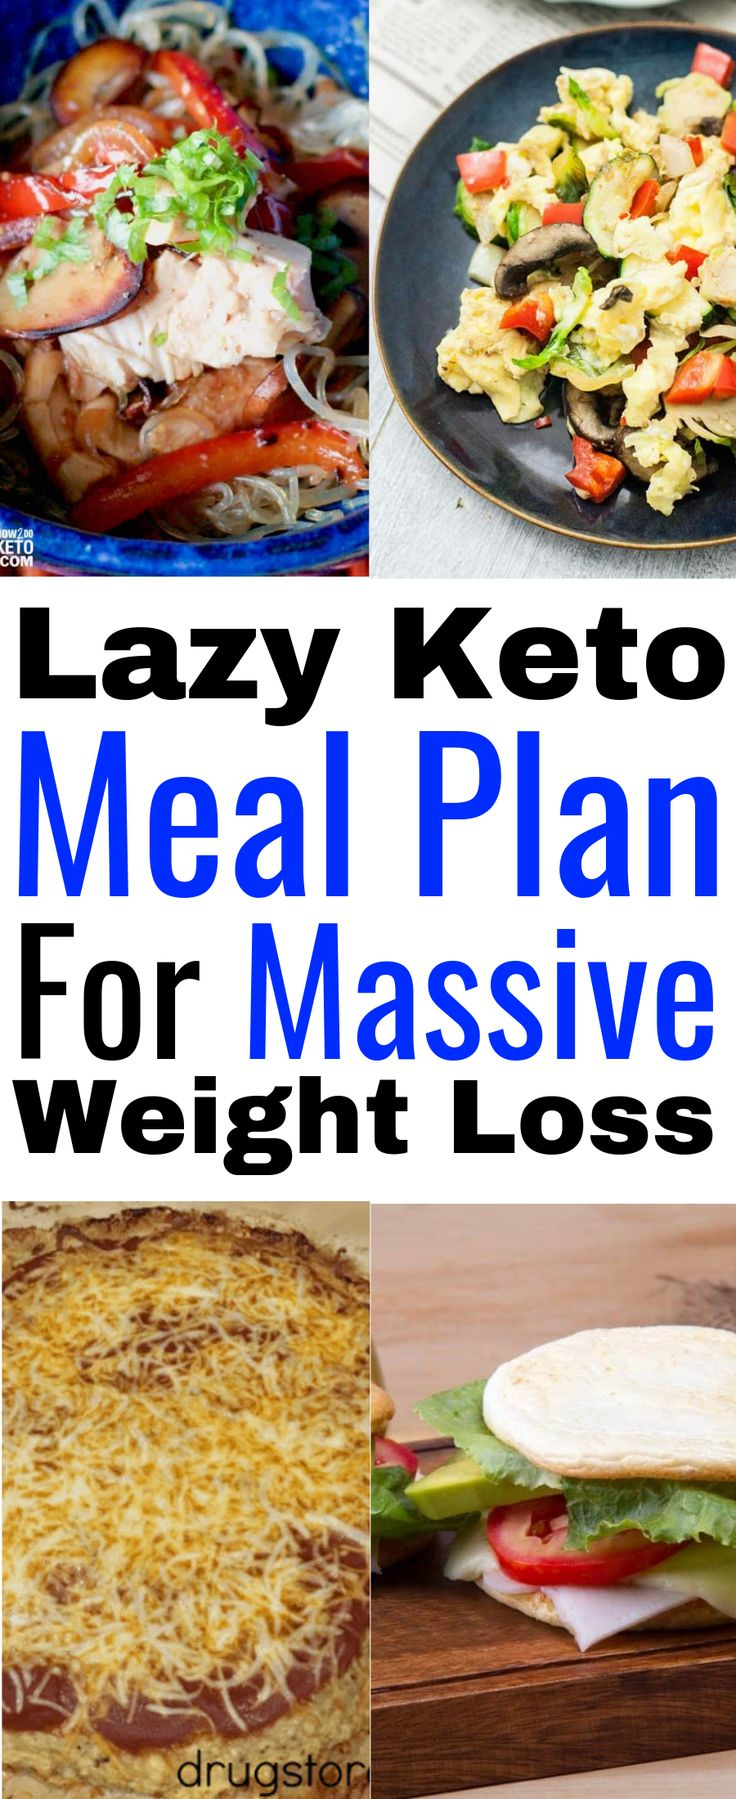 Lazy Keto Meal Plan (30 Day Keto Meal Plan With Recipes For Beginners)